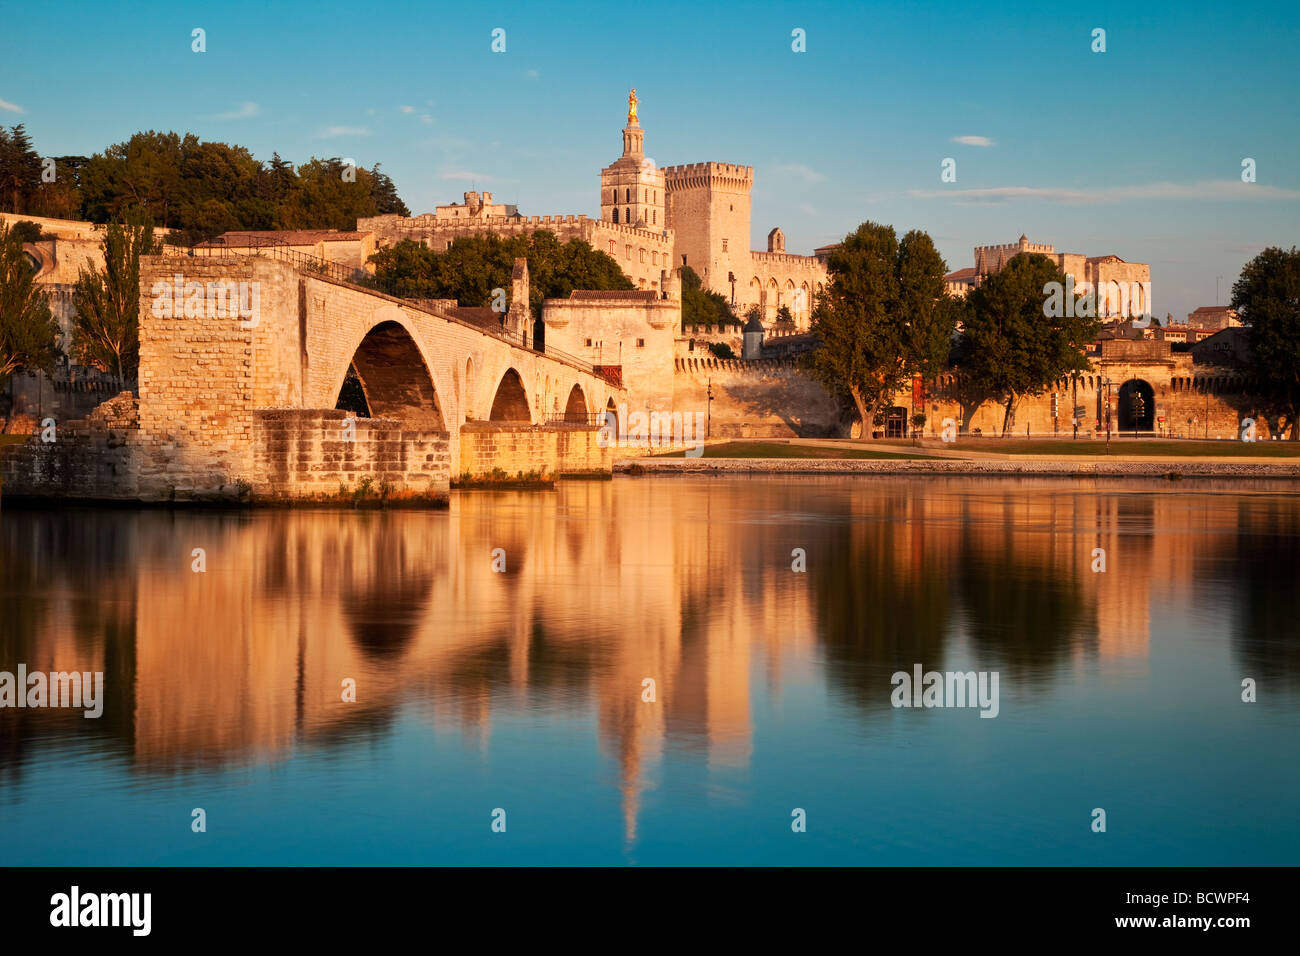 Pont St Benezet over River Rhone with Palais des Papes, Avignon Provence France - Stock Image